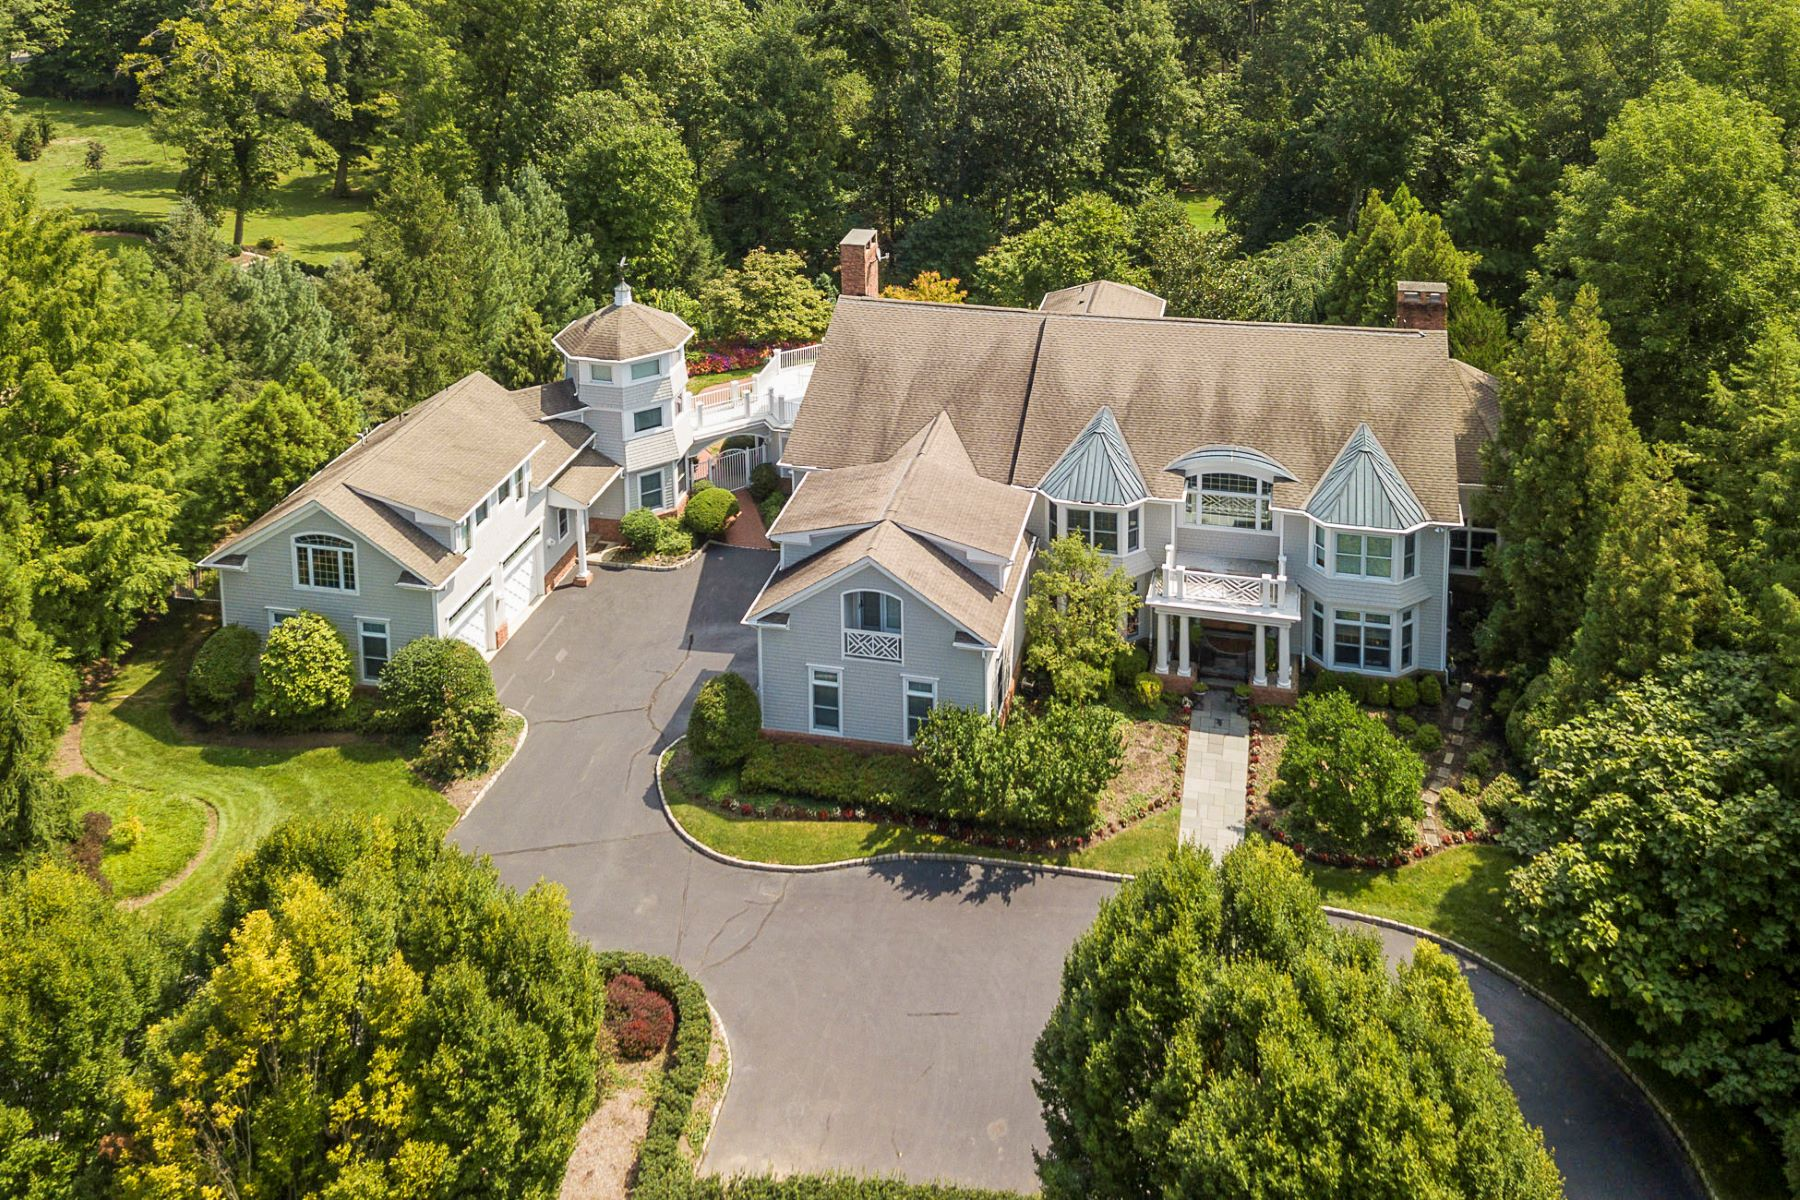 Property for Sale at Luxurious Living In A Class Of Its Own 17 Katies Pond Road, Princeton, New Jersey 08540 United States